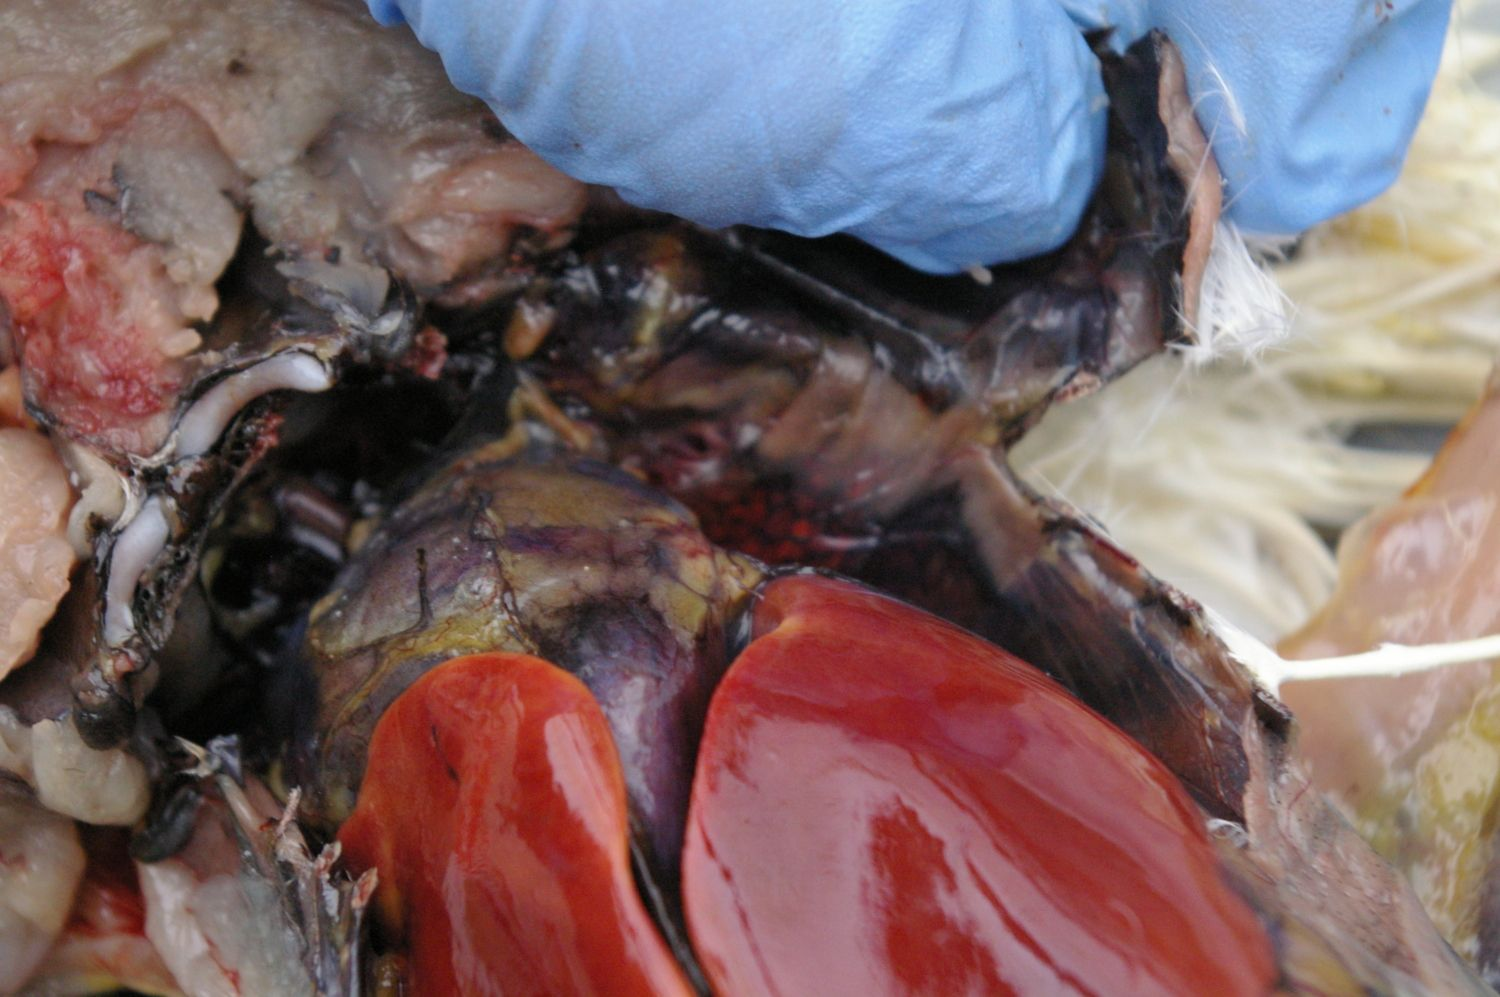 Red marbled area under my finger is the left lung. Heart and liver visible